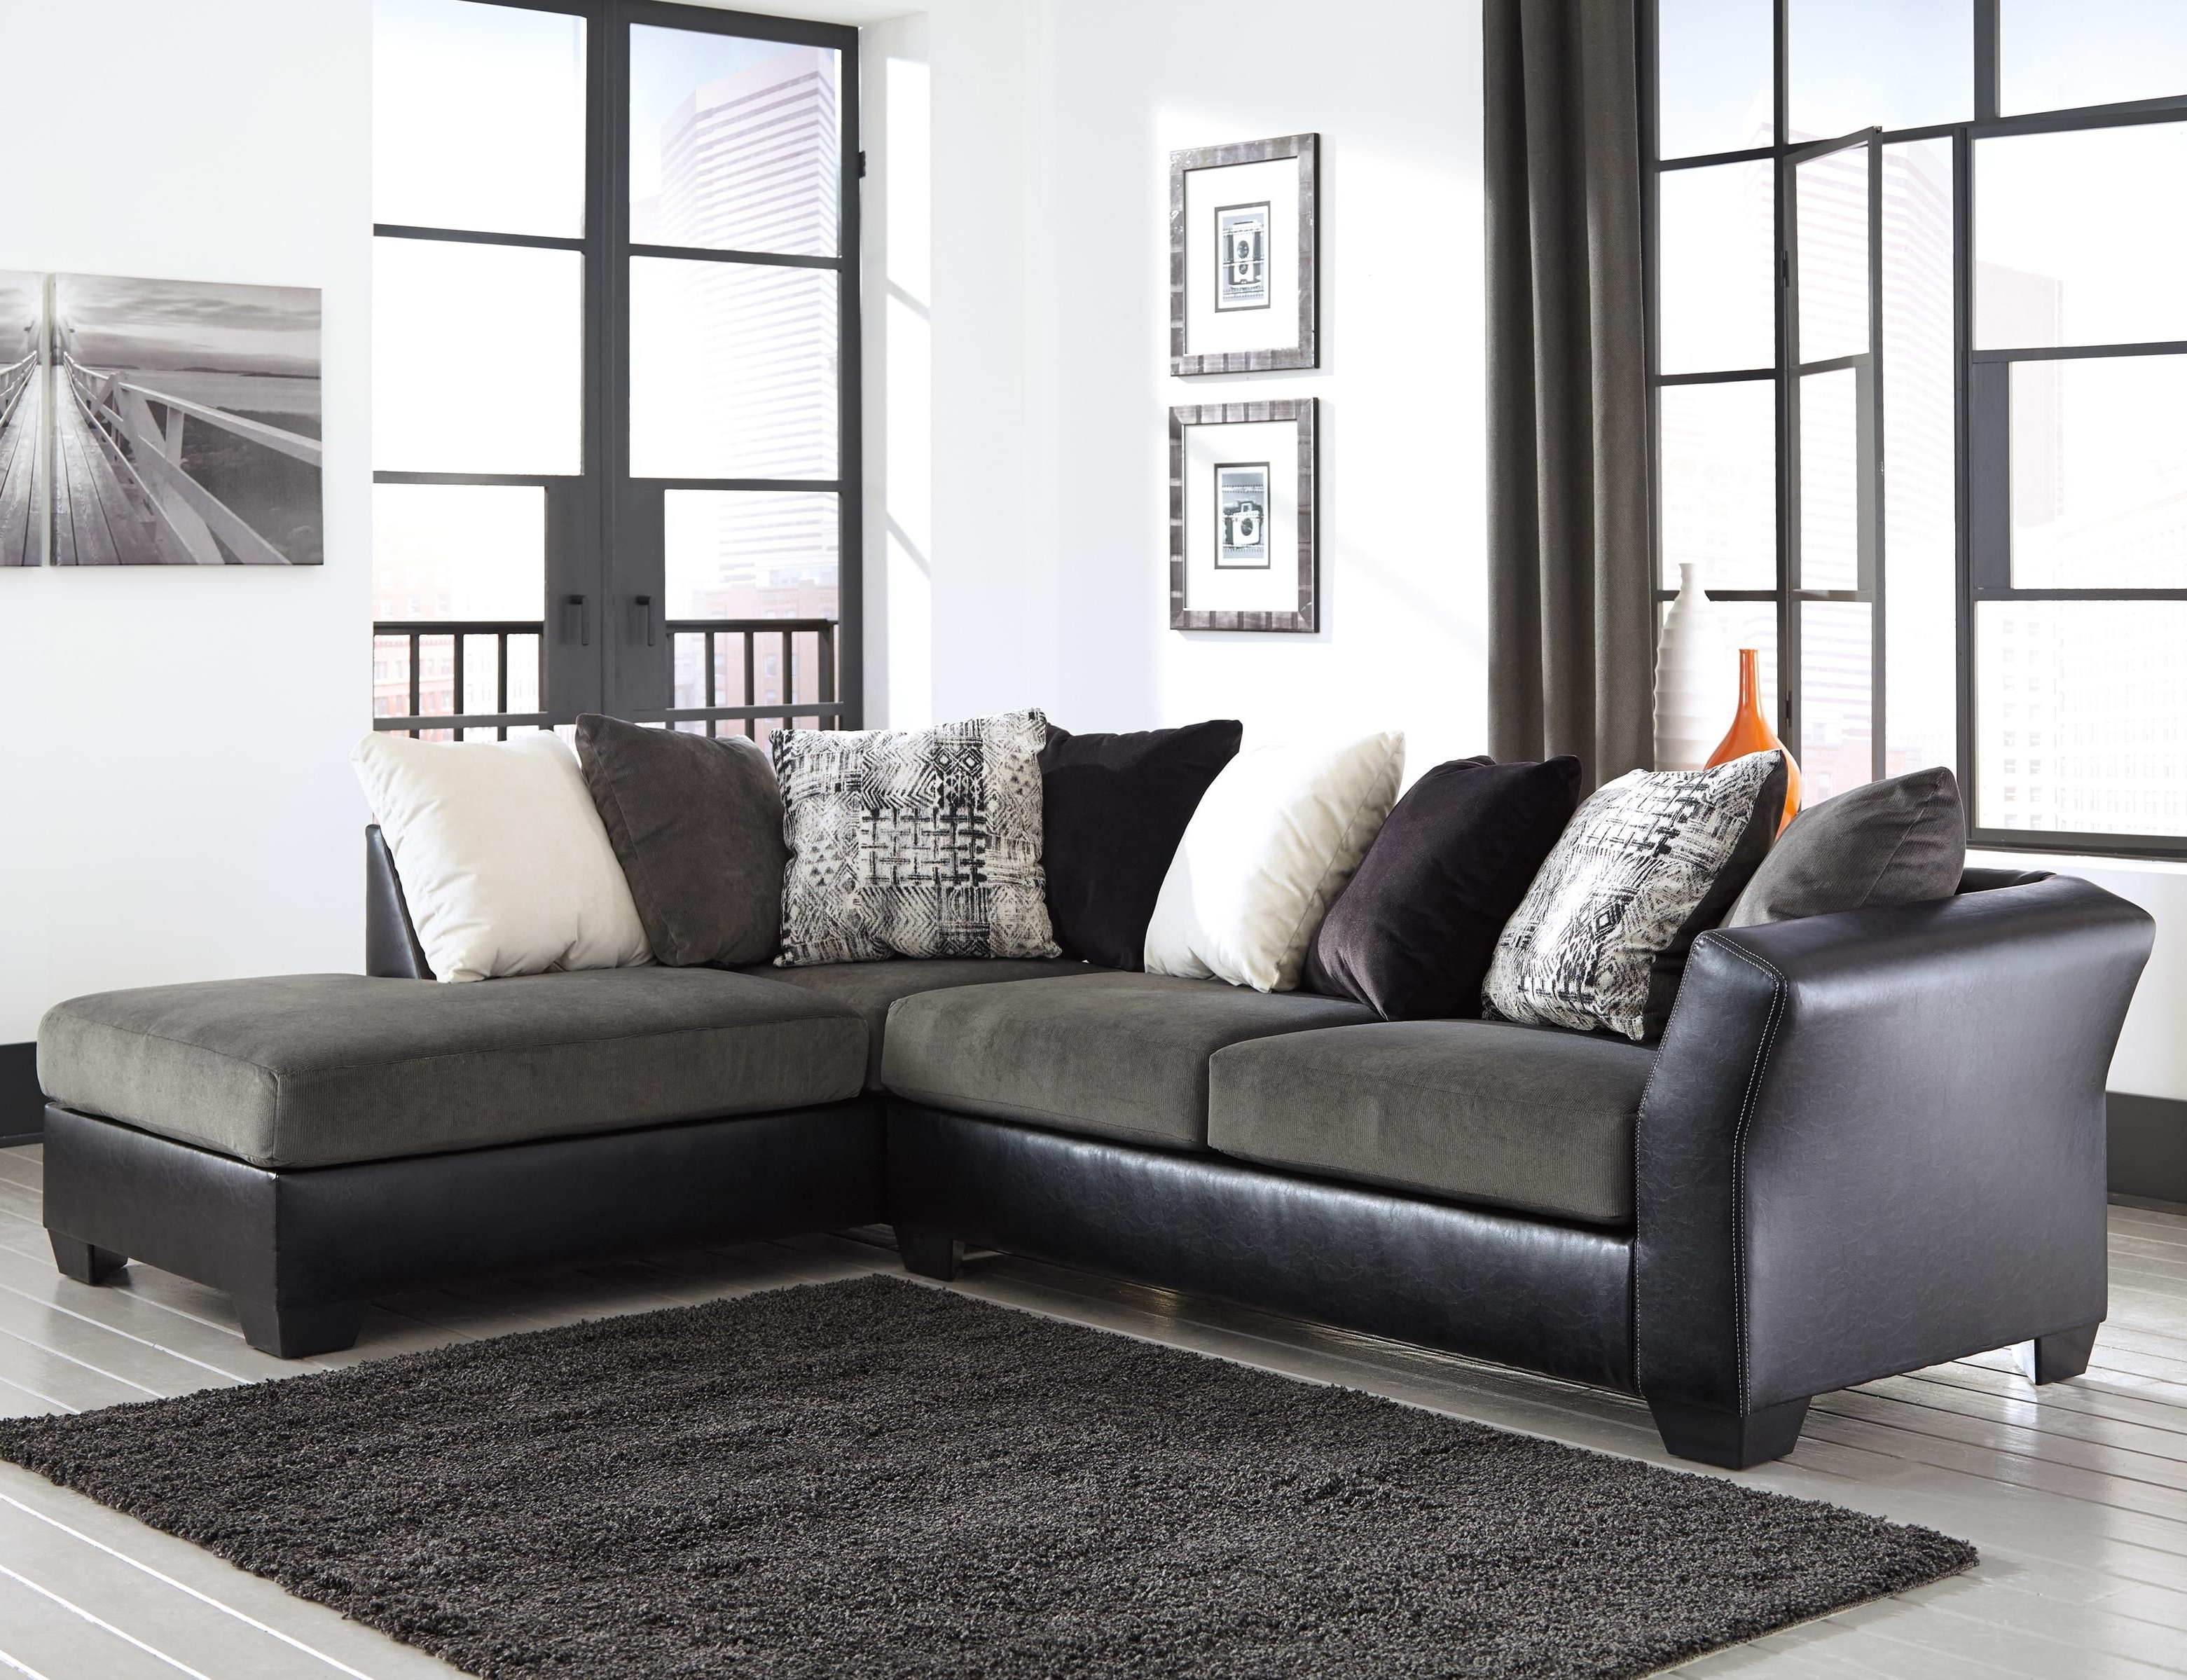 Well Known Armant 2 Piece Sectional With Right Chaisesignature Design In Eau Claire Wi Sectional Sofas (View 7 of 20)